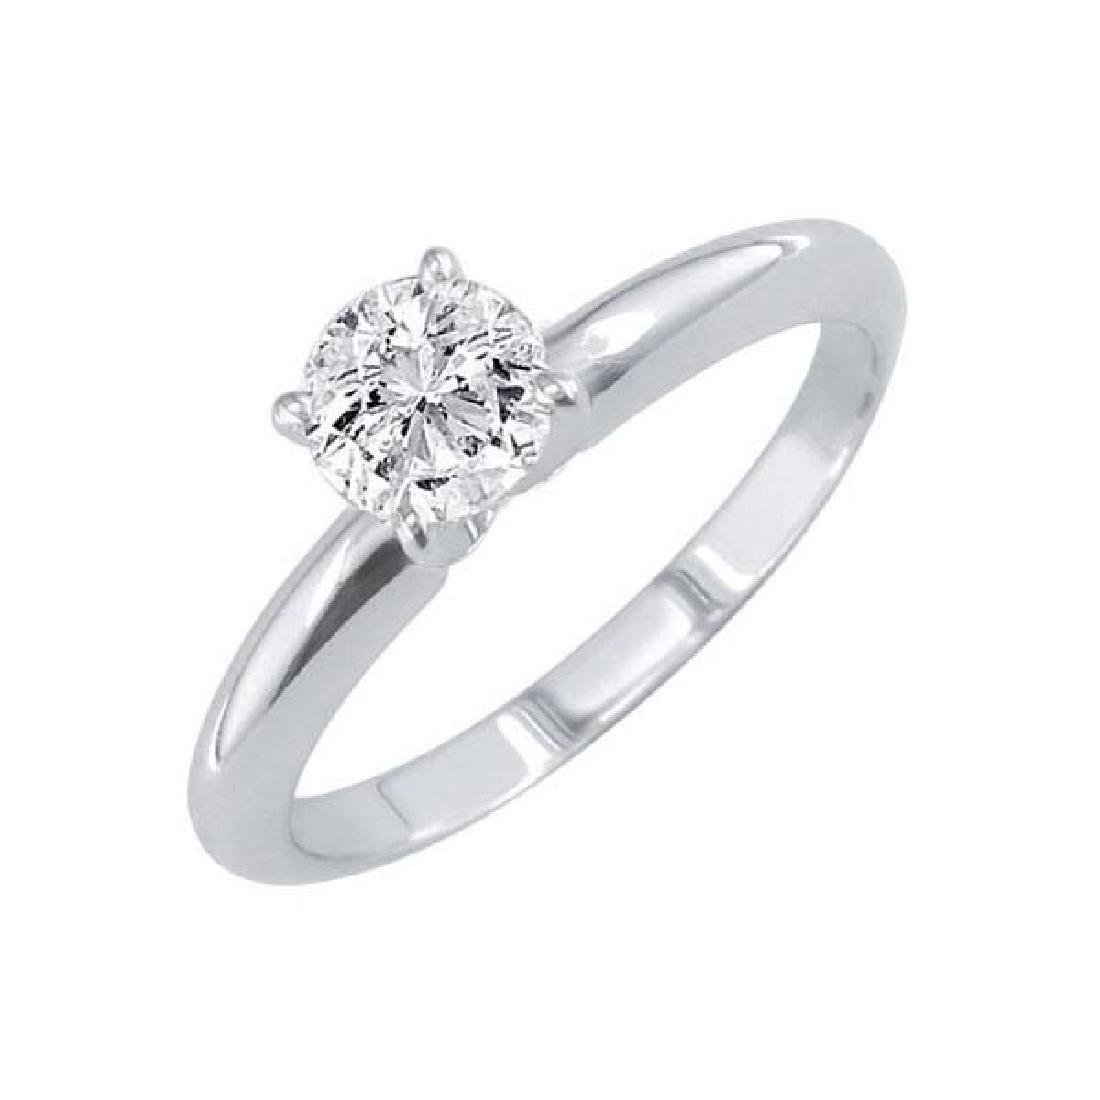 Certified 1.1 CTW Round Diamond Solitaire 14k Ring I/I1